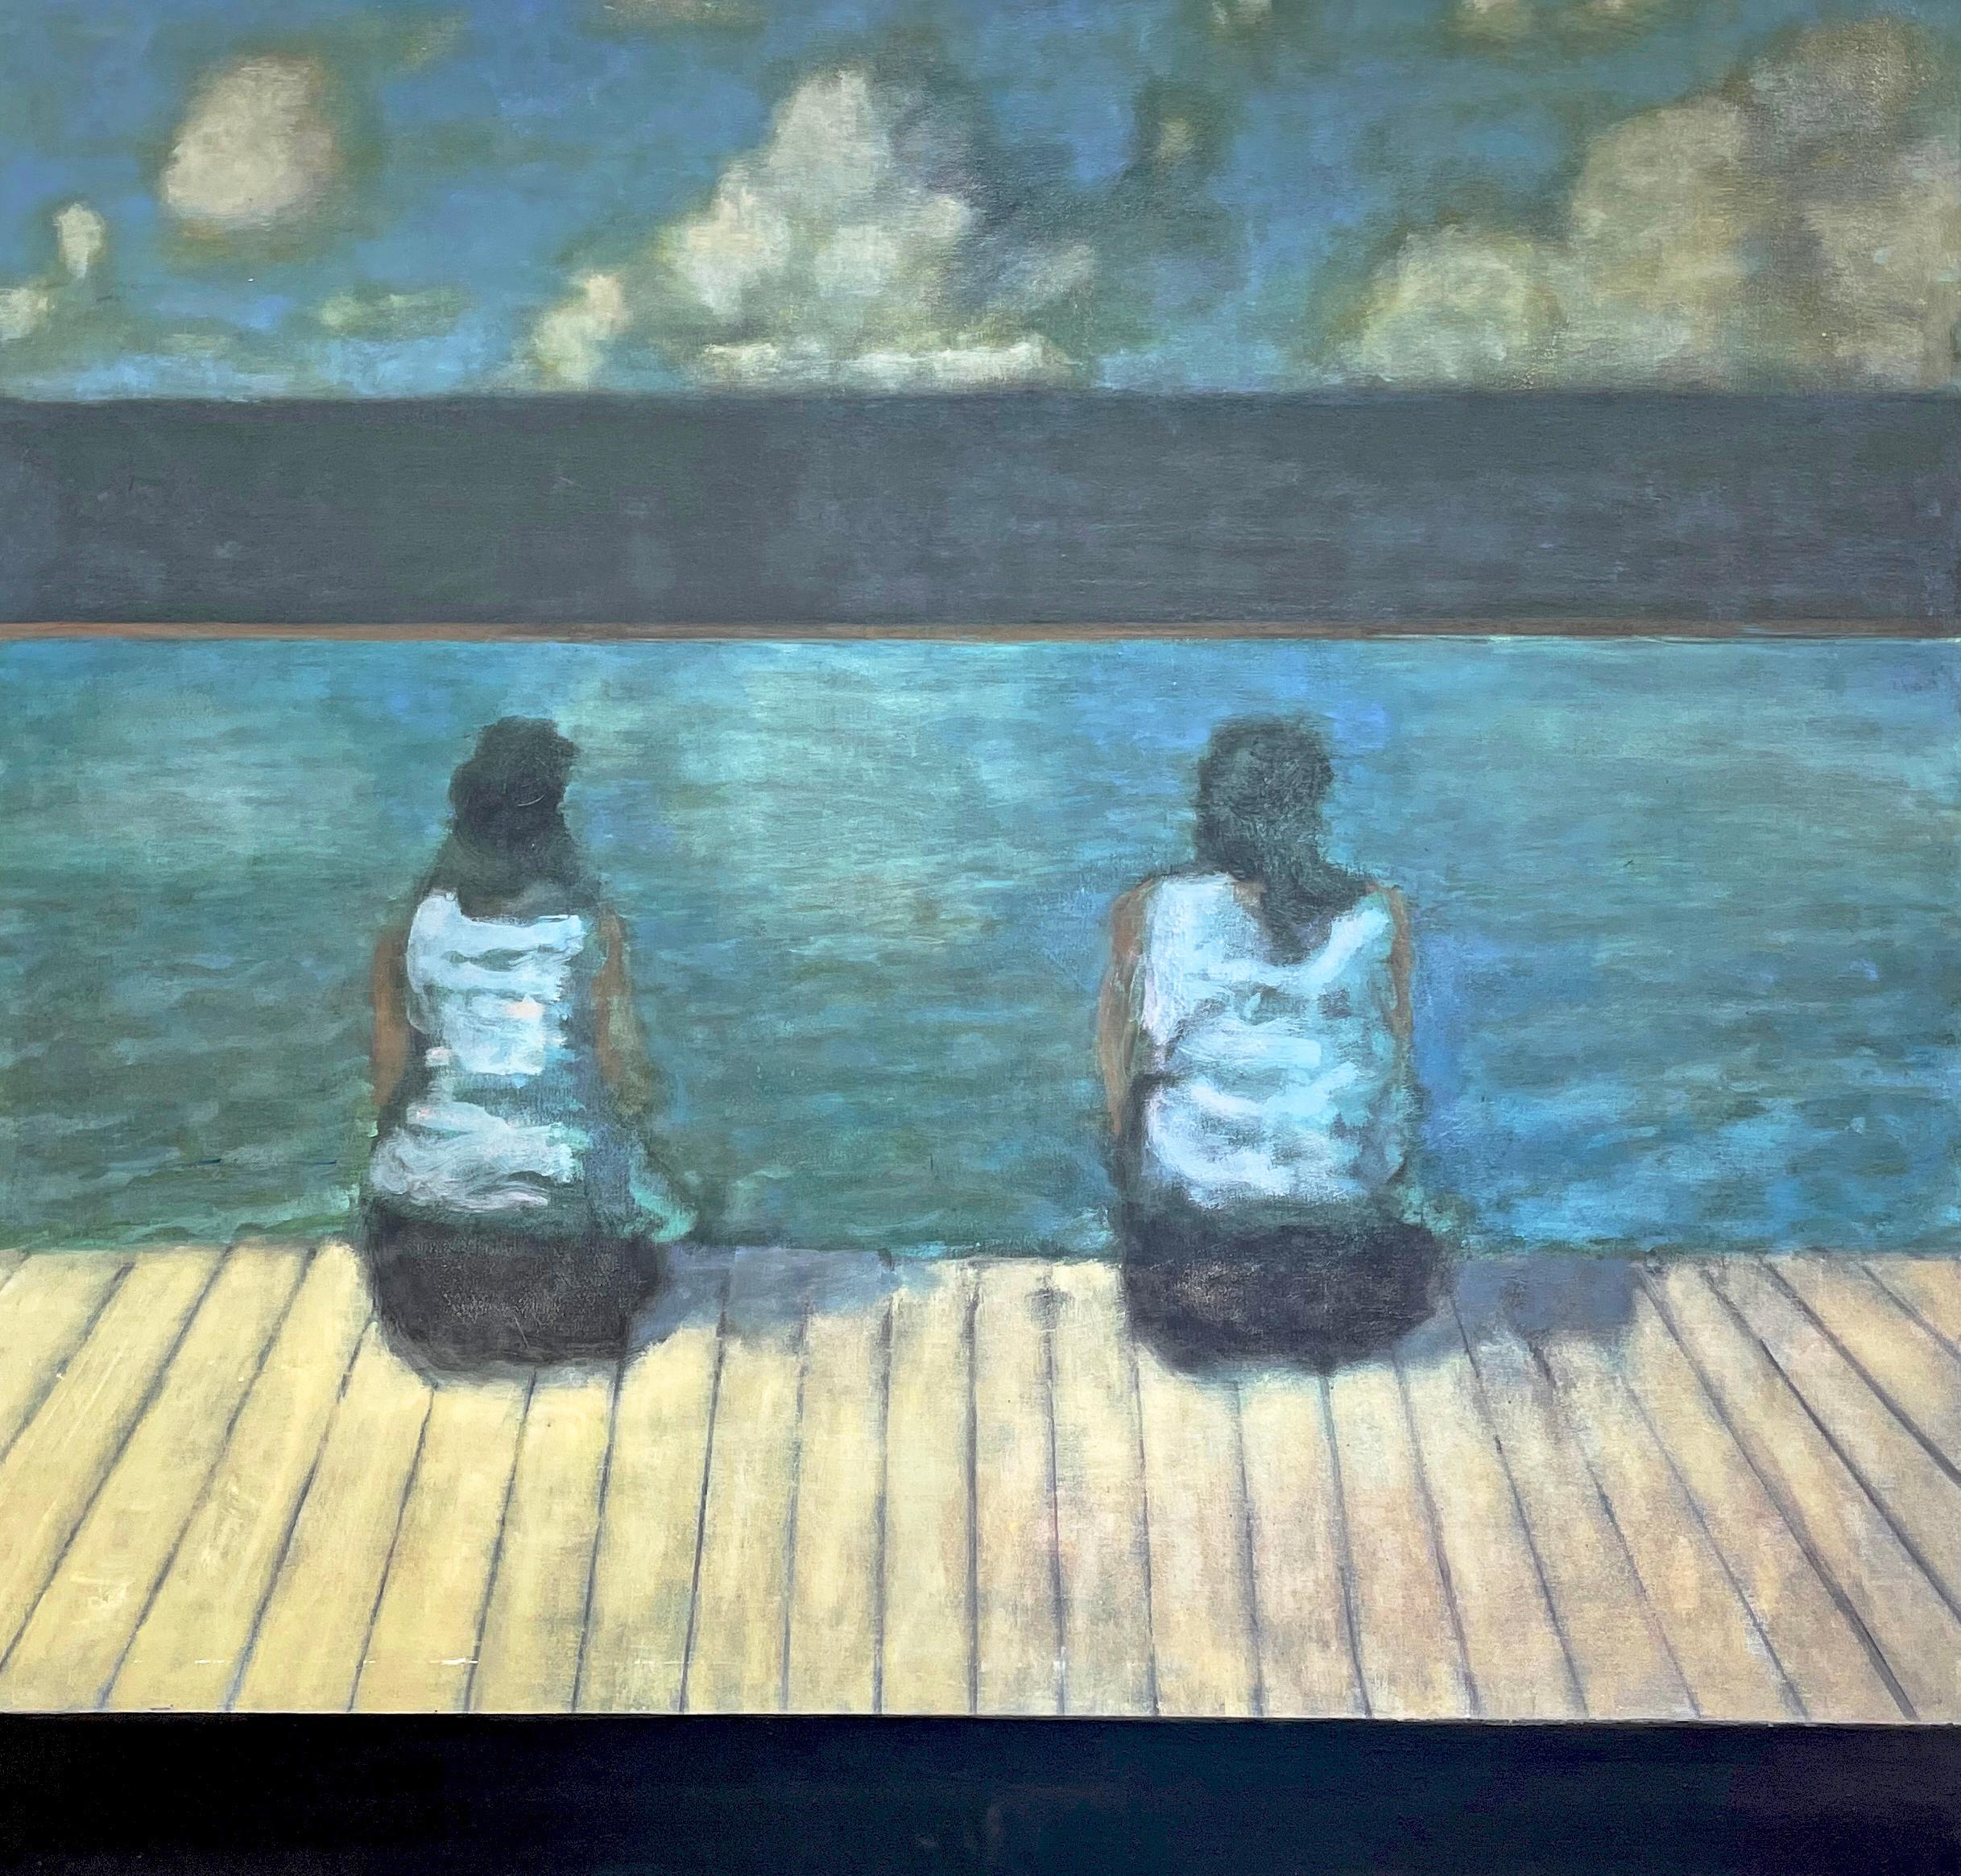 Dock (Figurative Painting of Two Women in a Turquoise River Valley Landscape)